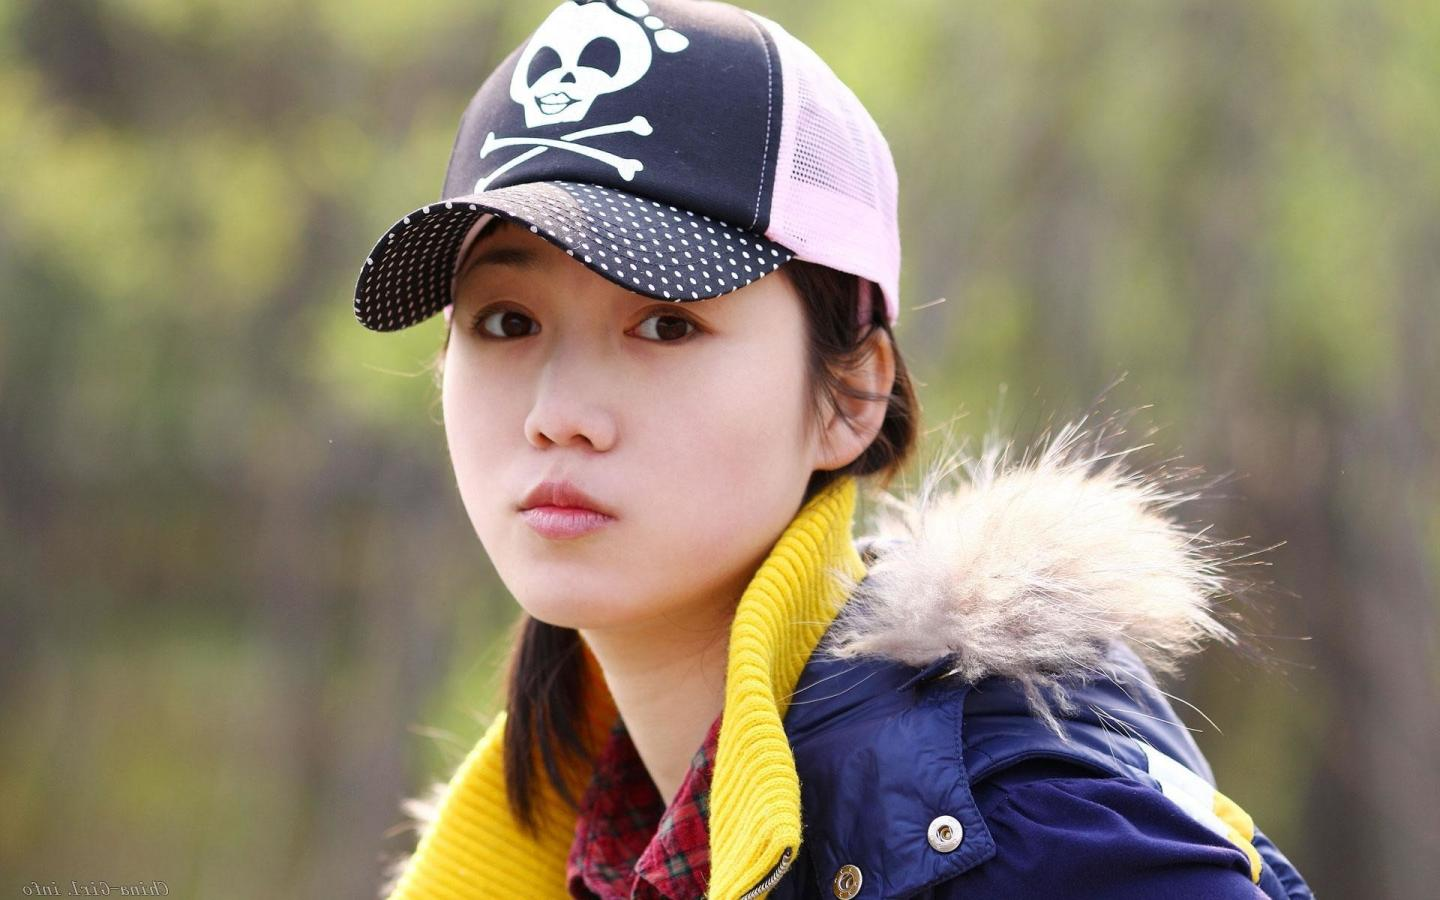 Beautiful girl wear nice cap and jacket wallpaper